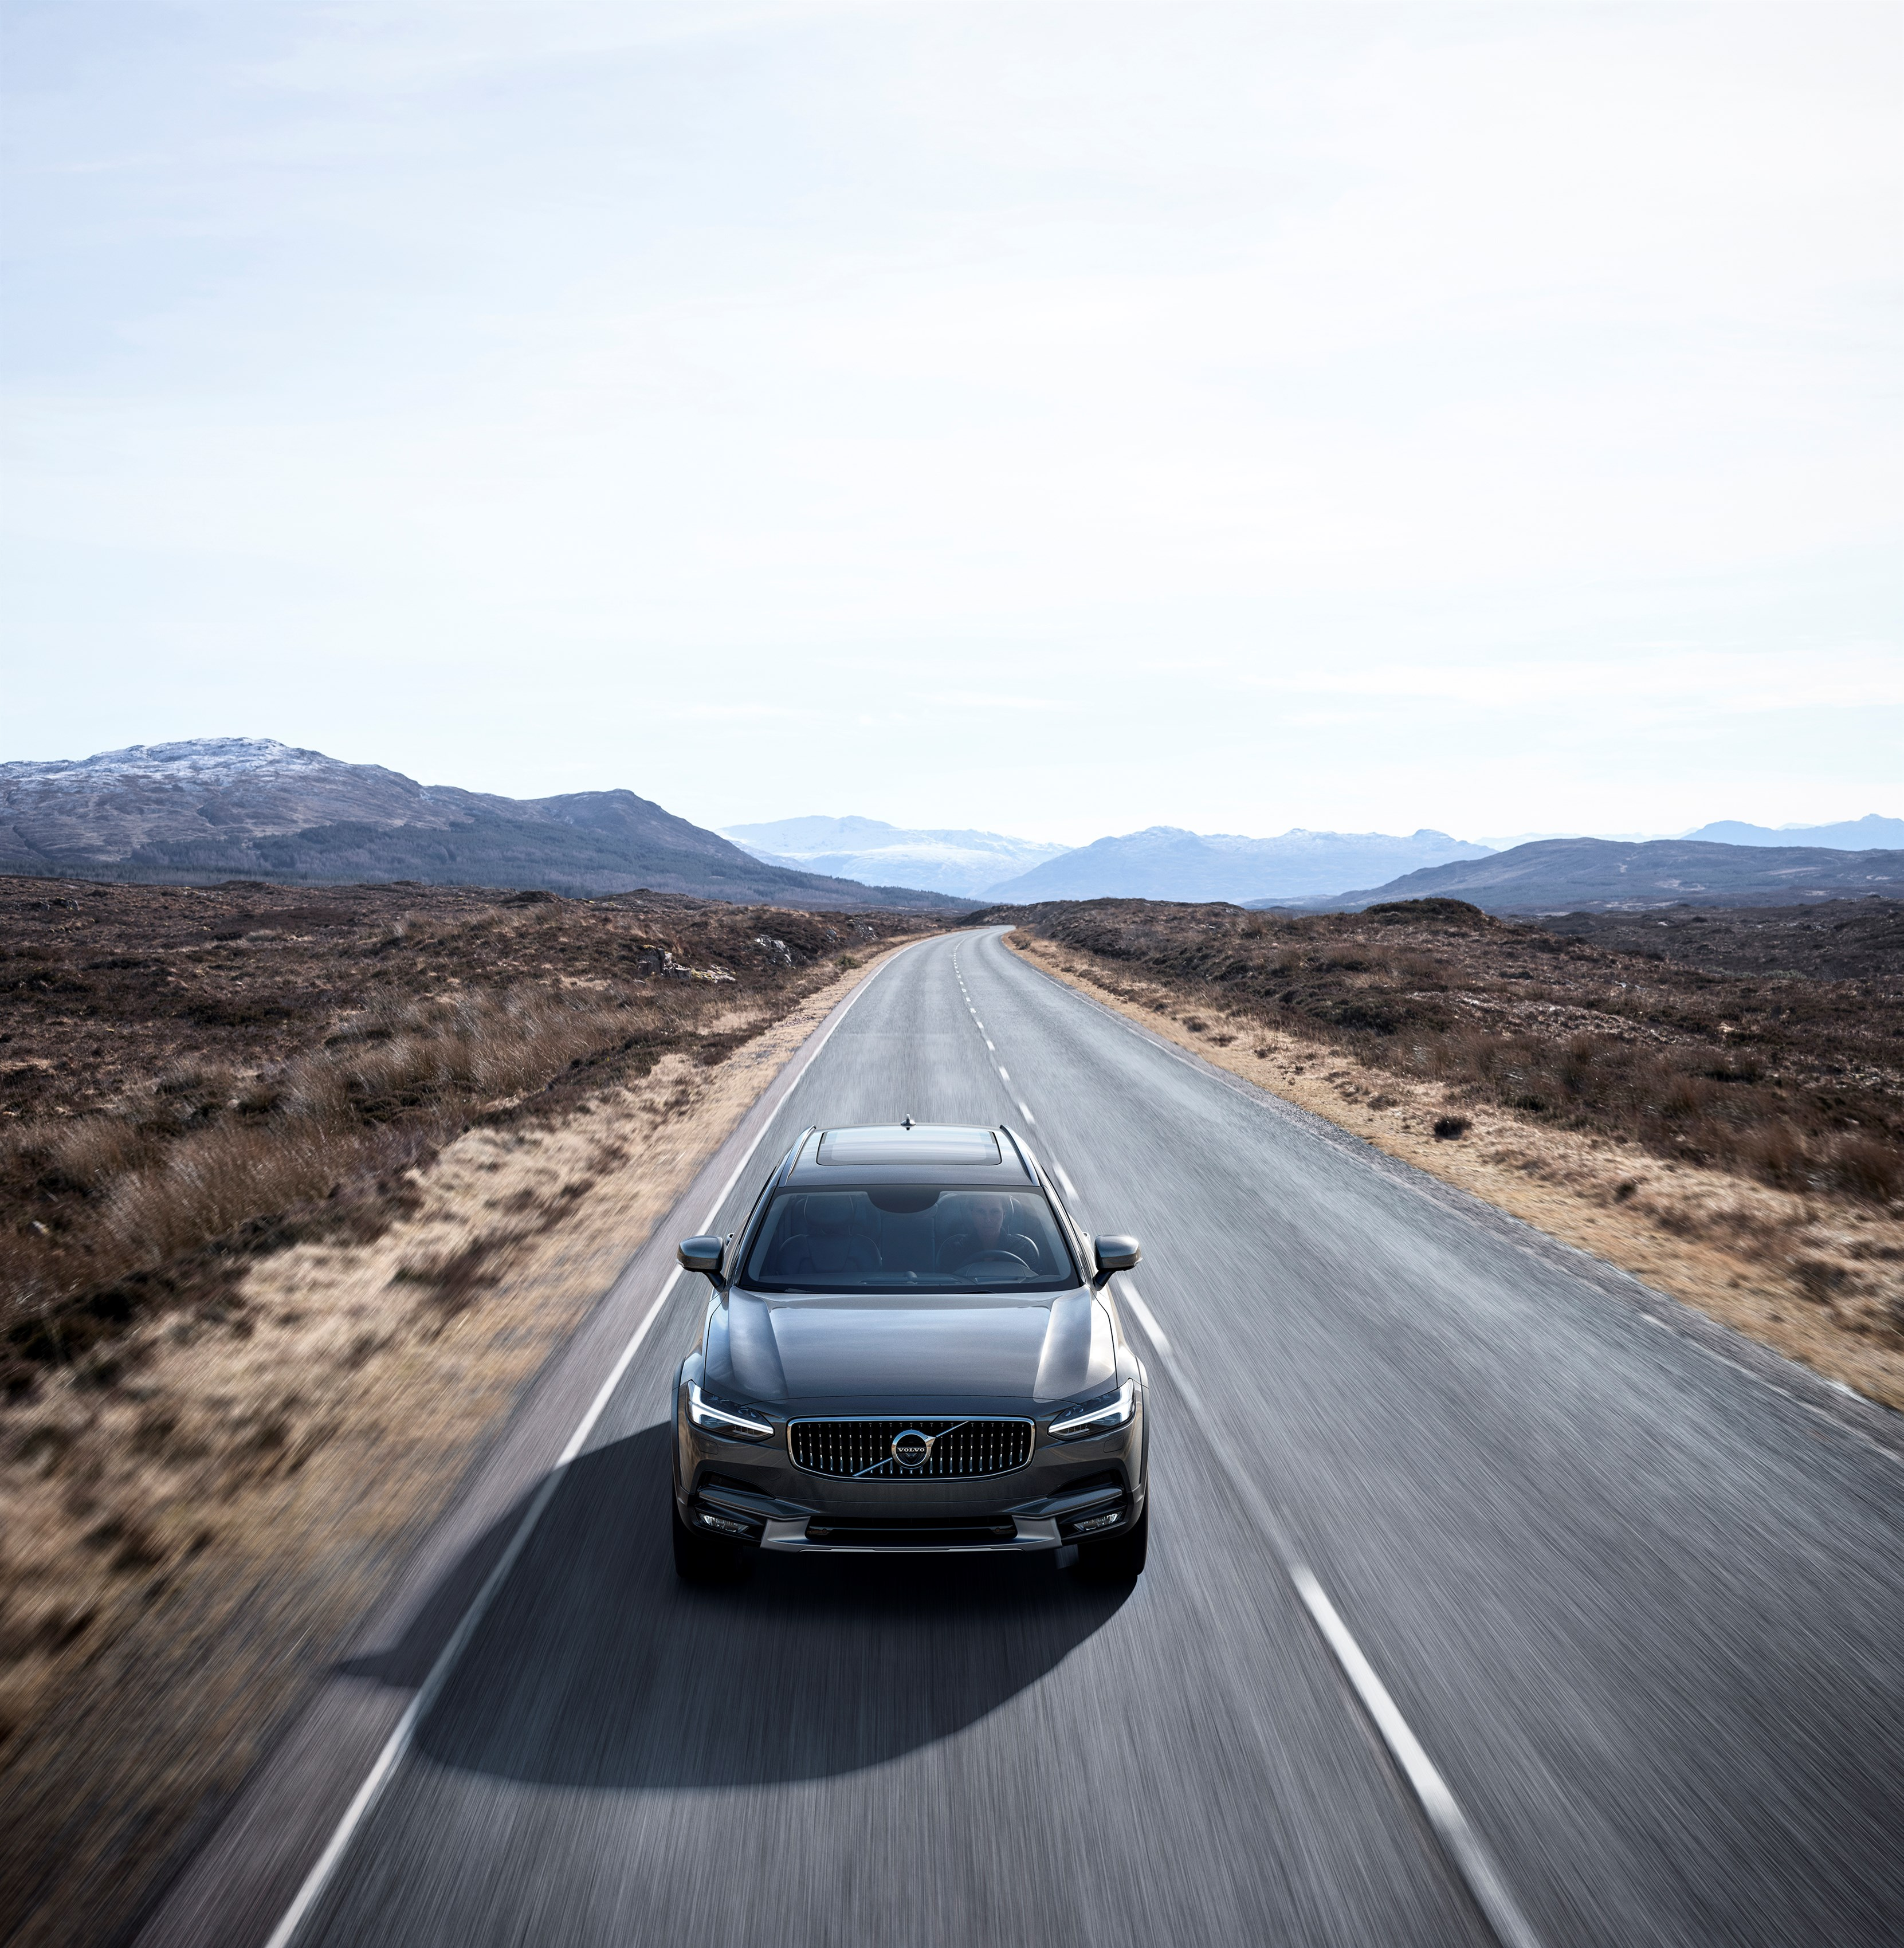 Volvo V90 Cross Country wagon photo